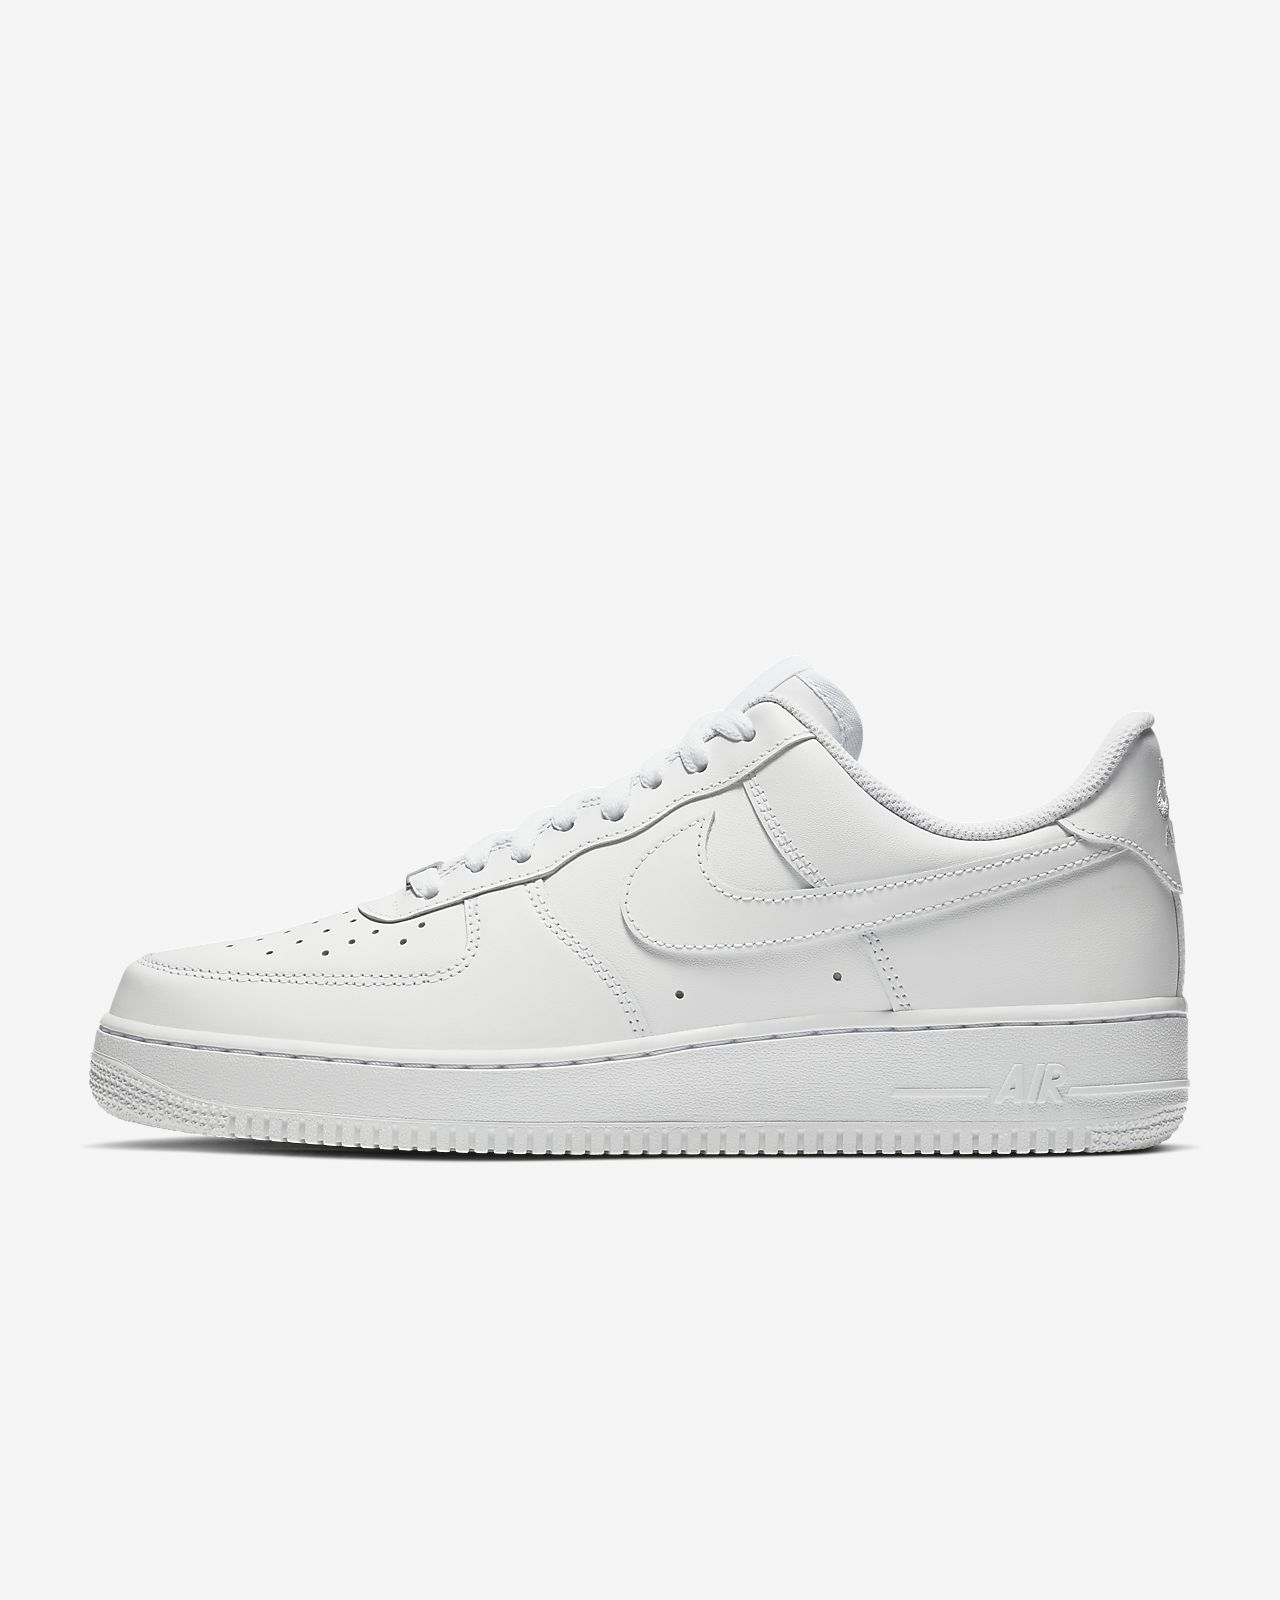 933a3bfb92a5 Nike Air Force 1  07 Shoe. Nike.com